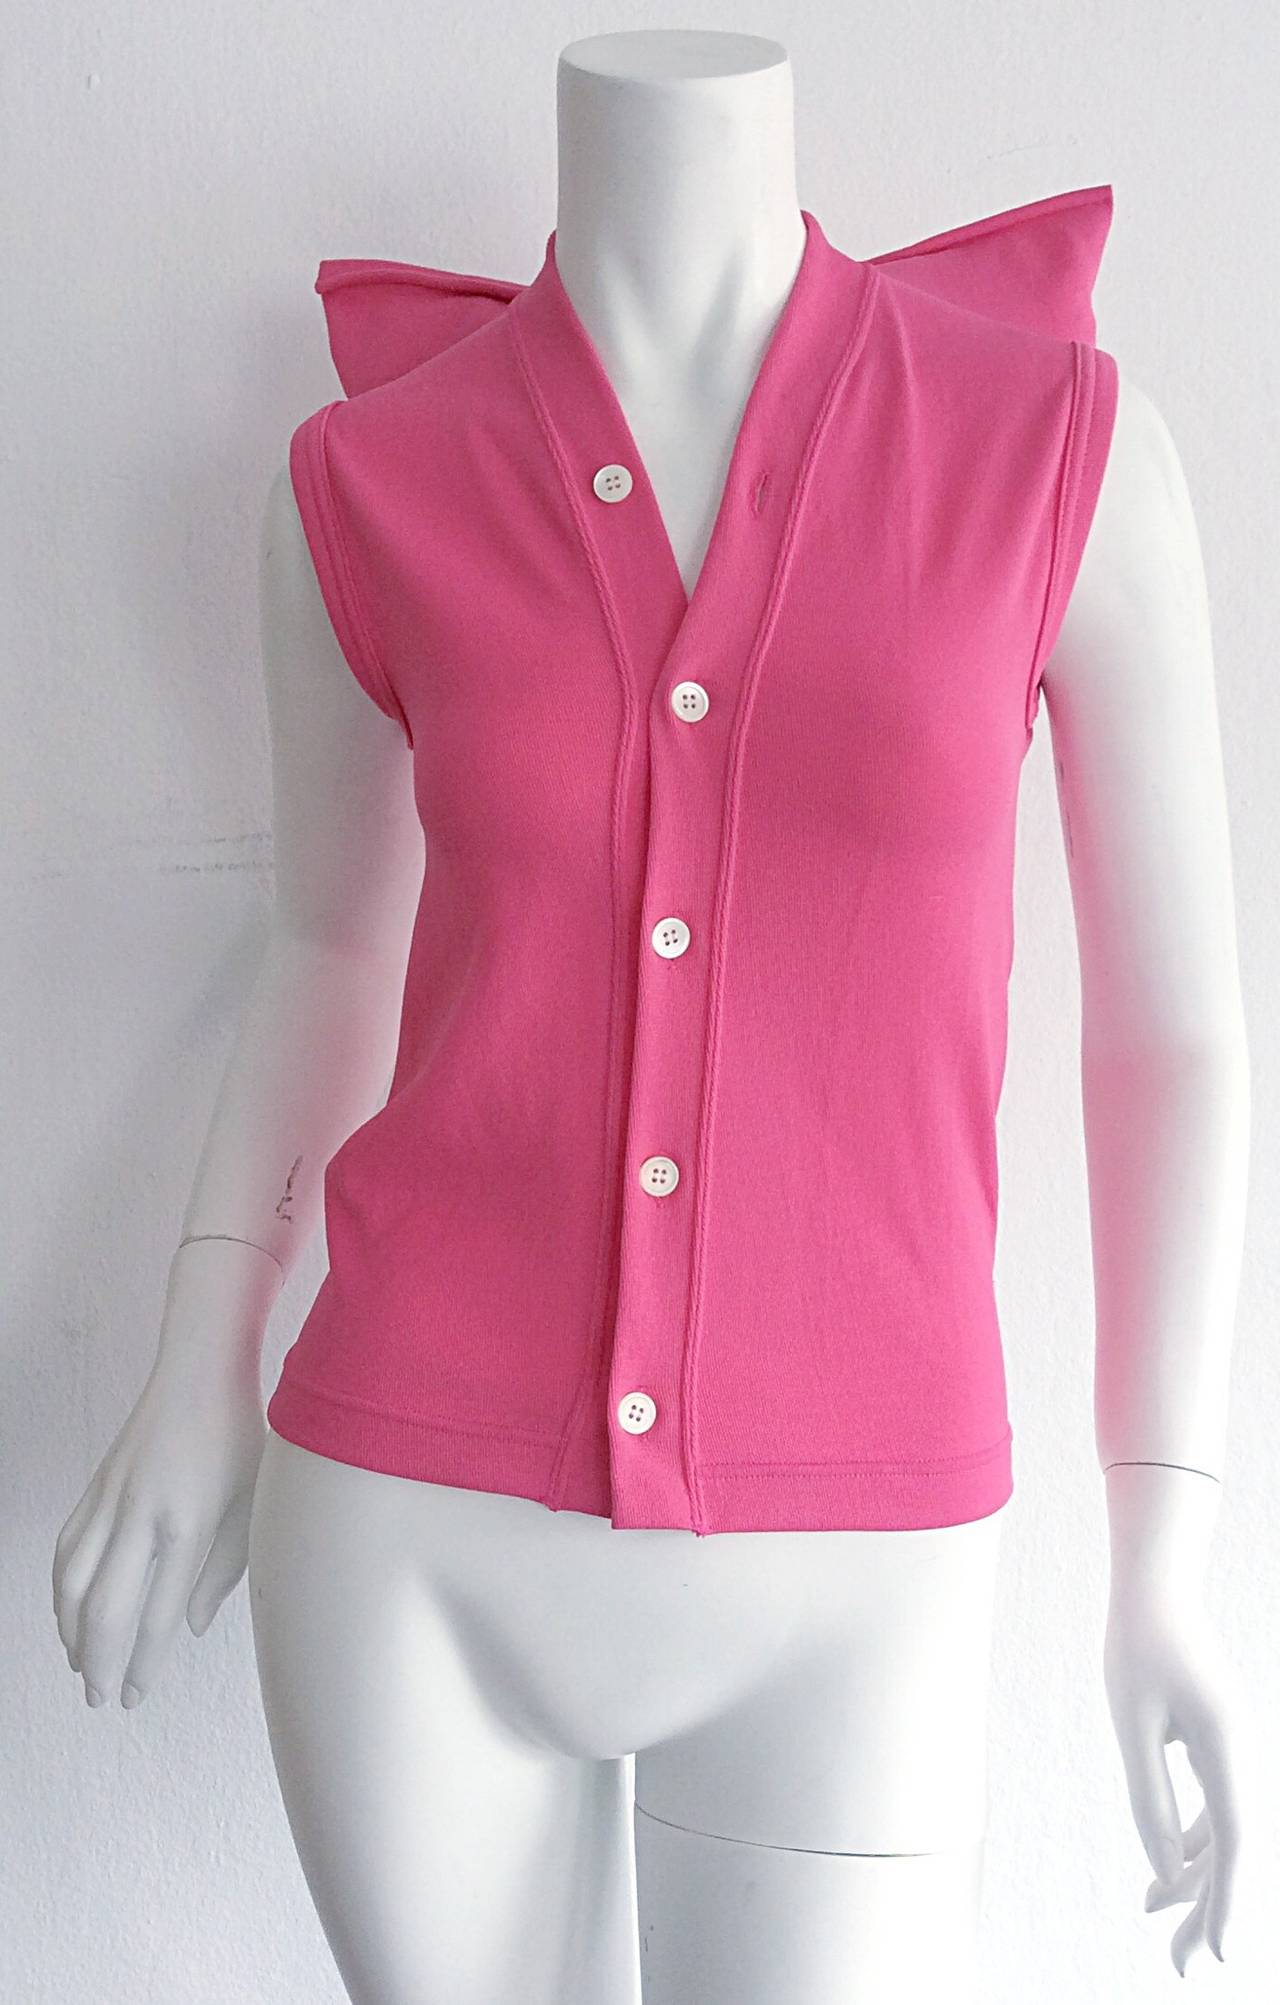 Amazing Avant Garde vintage Comme des Garcons hot pink top! Amazing shoulder detail. Buttons up the bodice. Can easily be dressed up or down. Looks great belted, or alone. In great condition. Will fit Small-Medium, due to stretch.